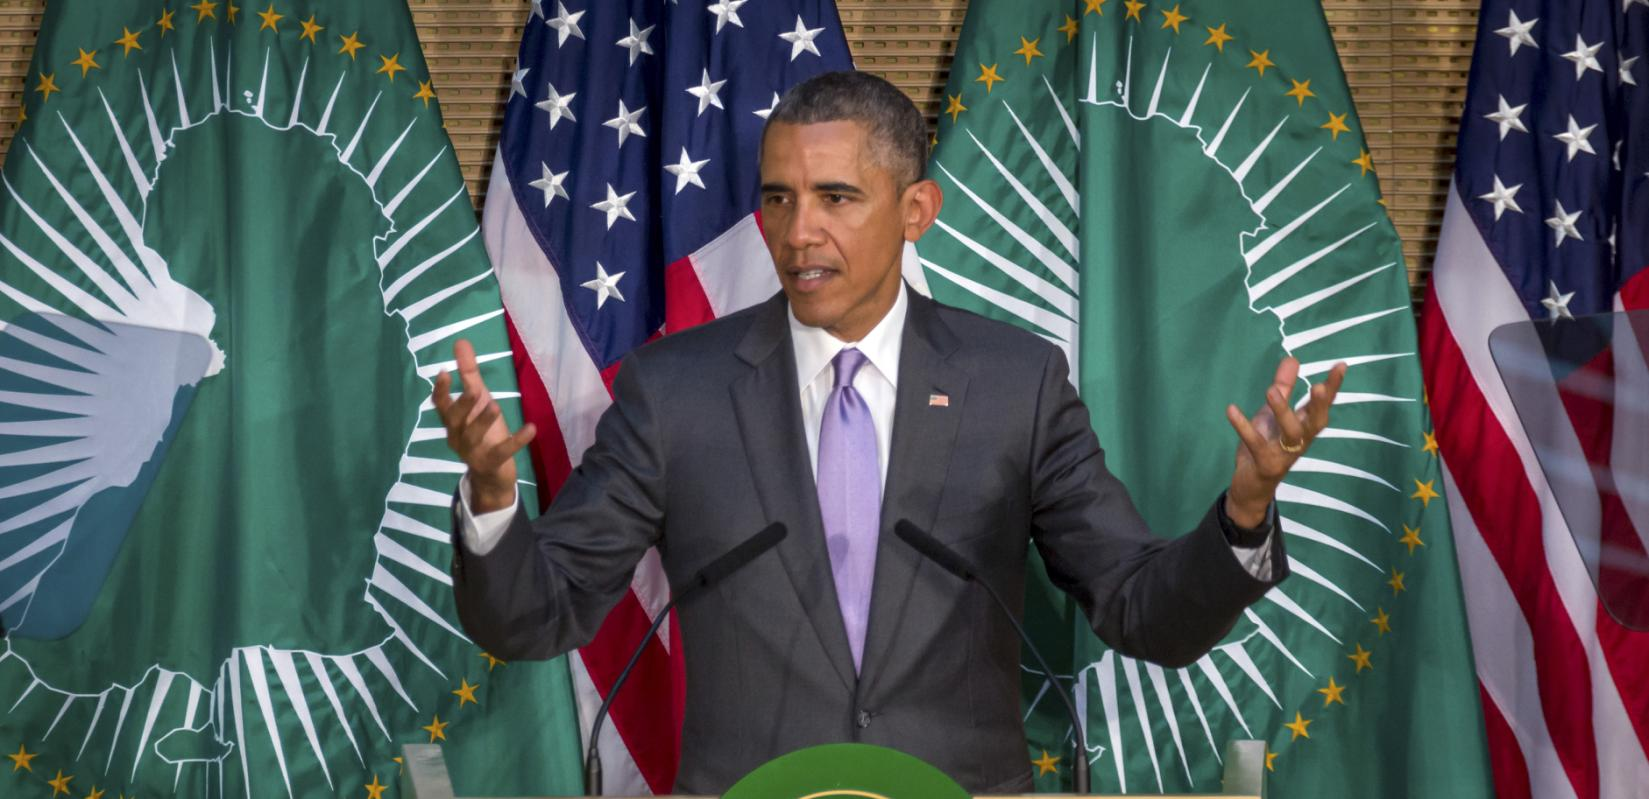 President Barack Obama delivers a speech to the African Union in Addis Ababa, Ethiopia Tuesday, July 28, 2015. Closing a historic visit to Africa, President Barack Obama on Tuesday urged the continent's leaders to prioritize creating jobs and opportunity for the next generation of young people or risk sacrificing future economic potential to further instability and disorder. (AP Photo/Mulugeta Ayene)